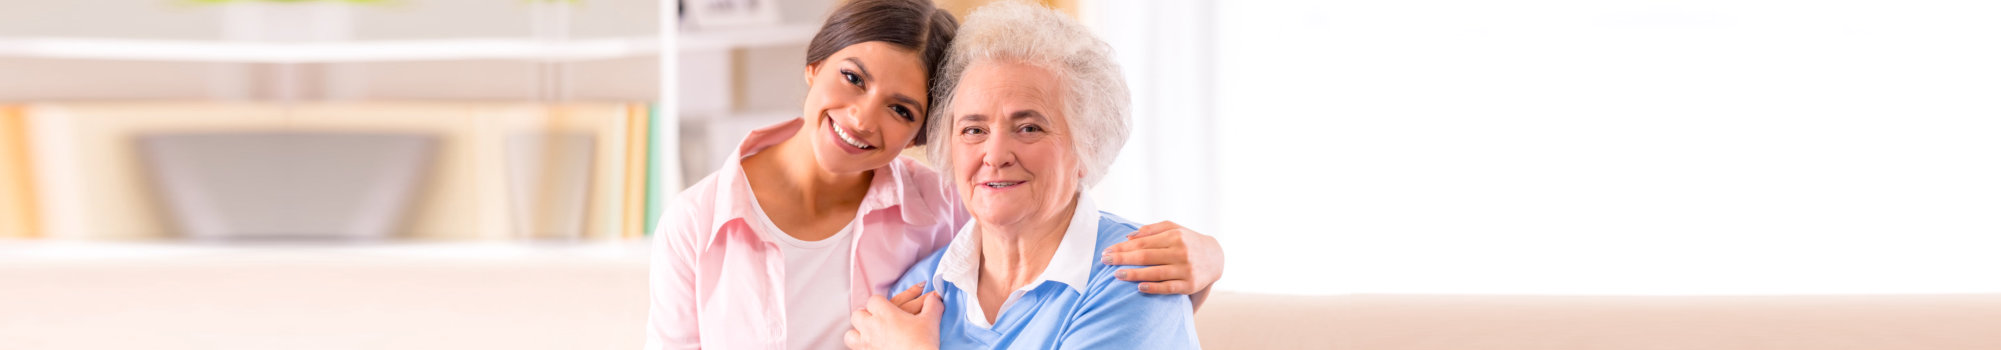 Companion Services | Home Care in SC | Angels Touch Home ...